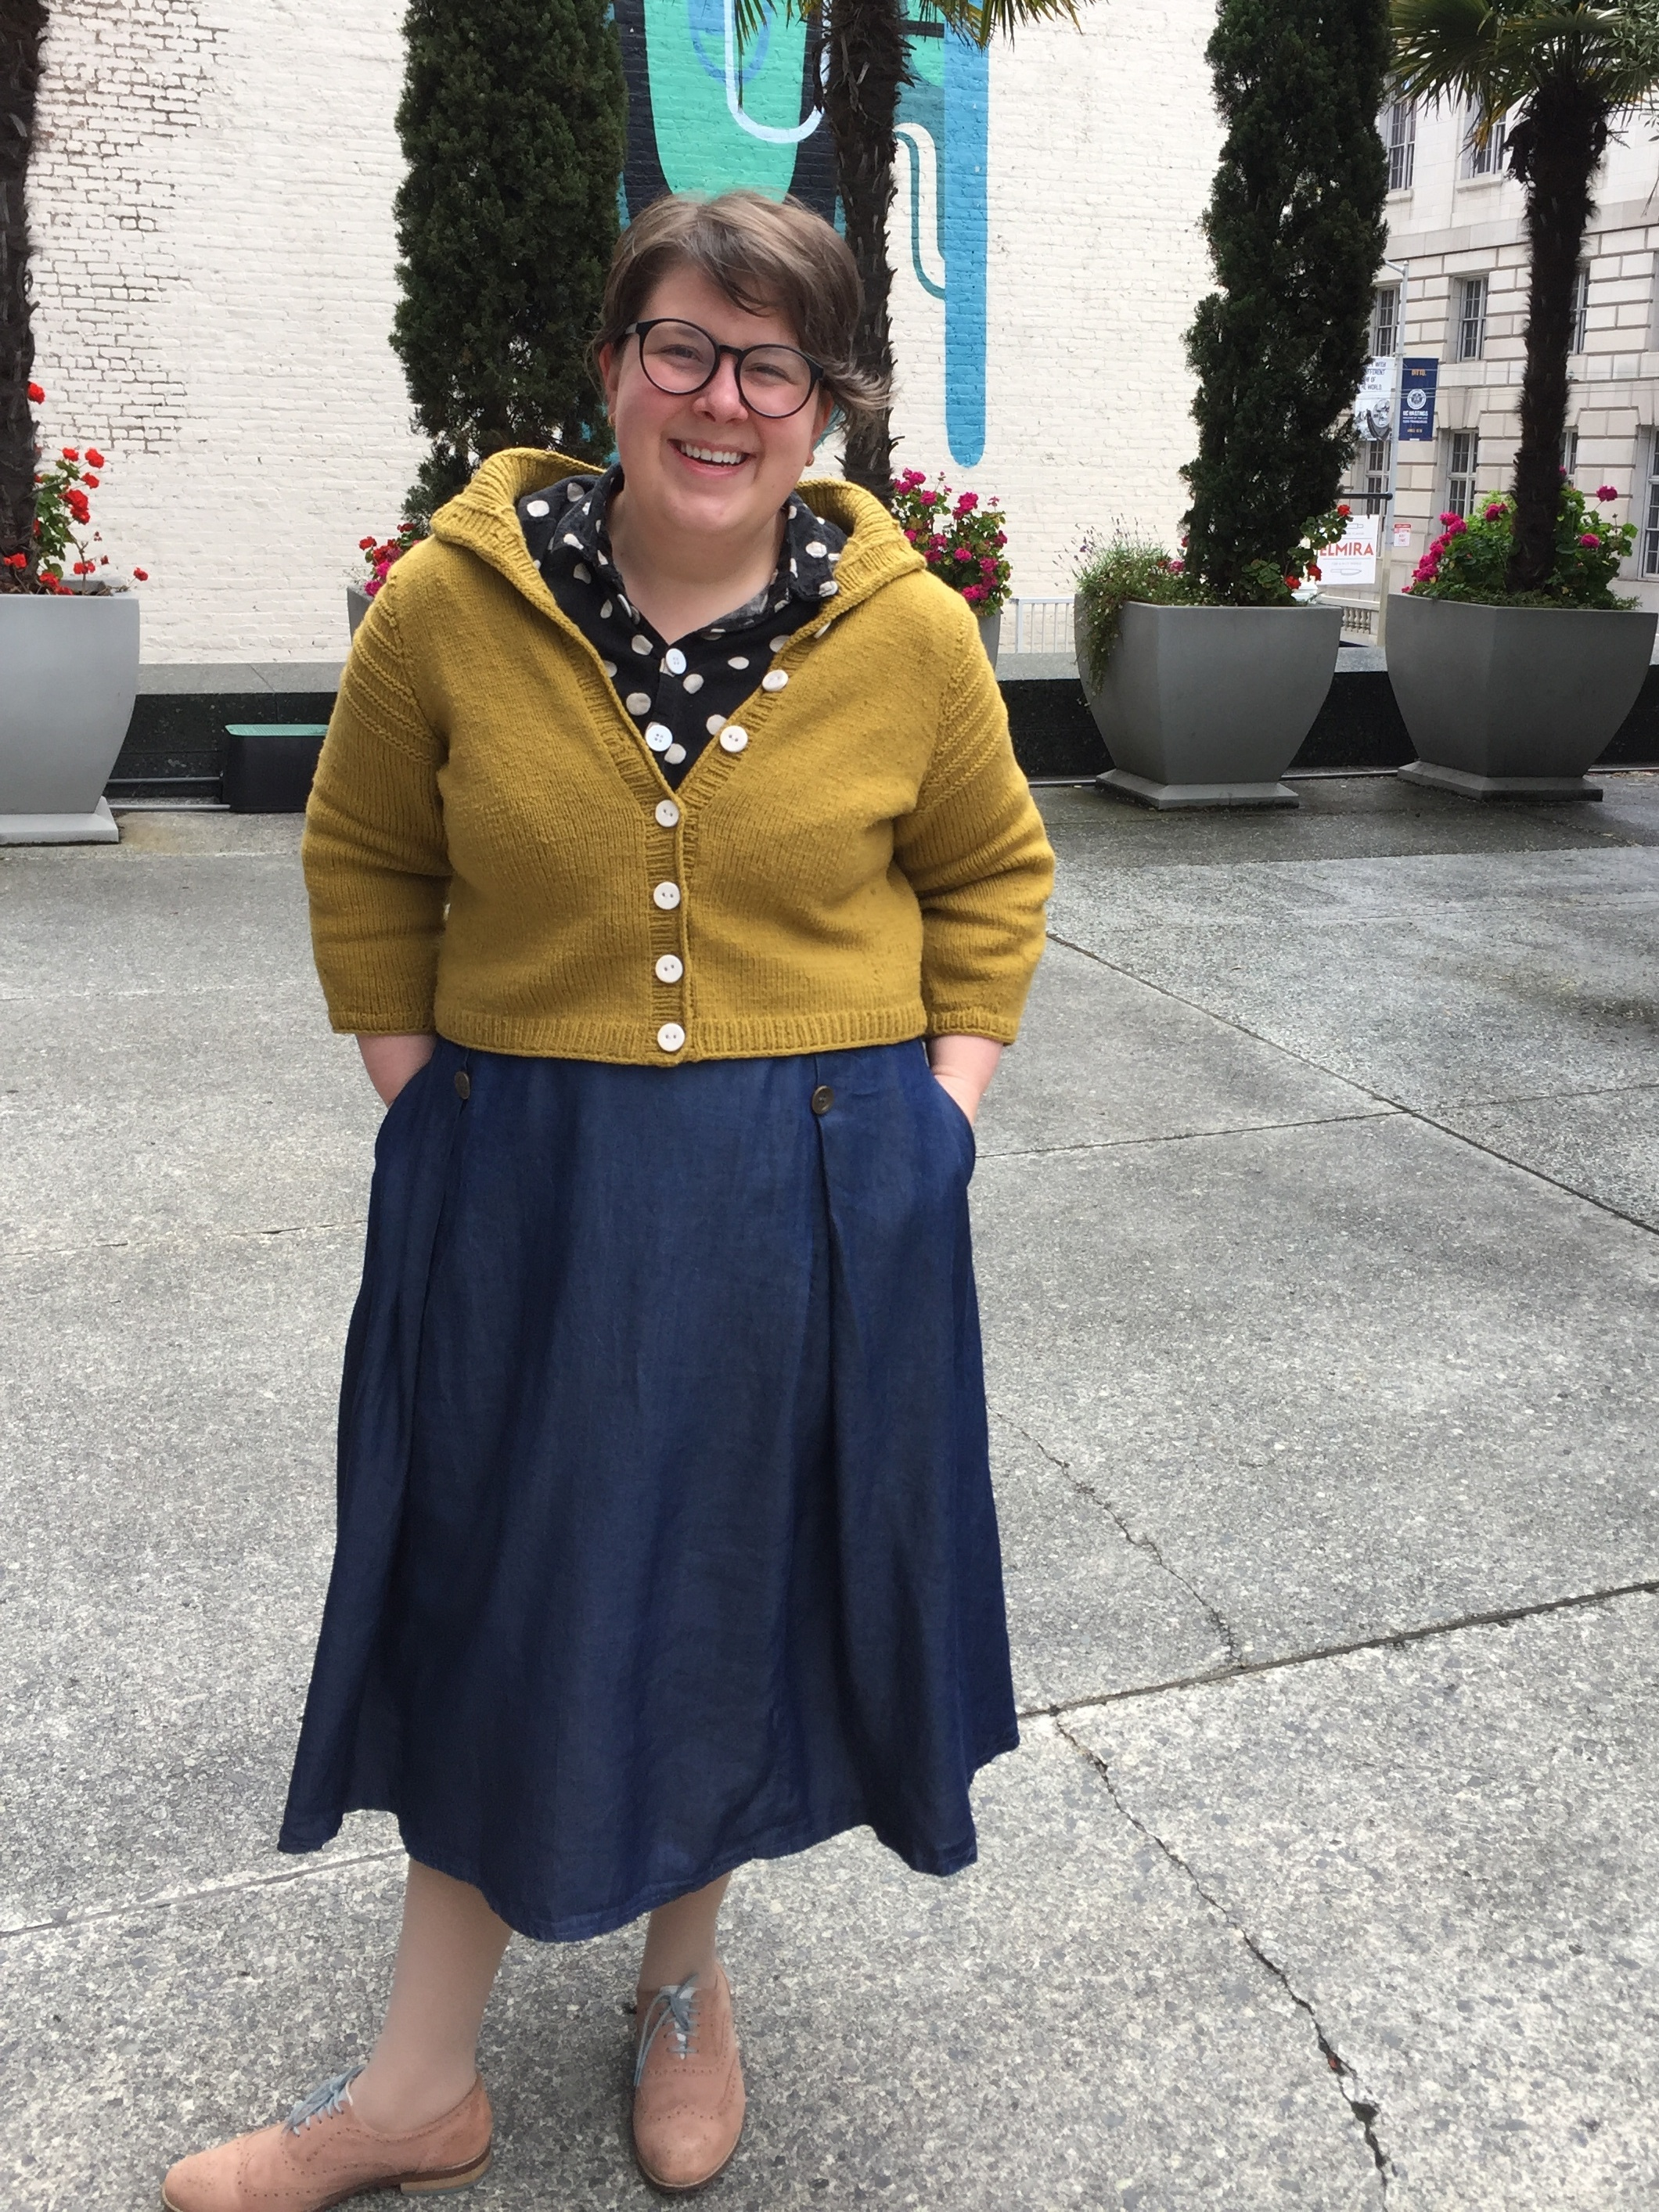 May 20: 1950s PB&J Skirt in Denim tencel, Isca skirt in Japanese Linen/Cotton, Christabel Cardigan in Stone Wool Cormo